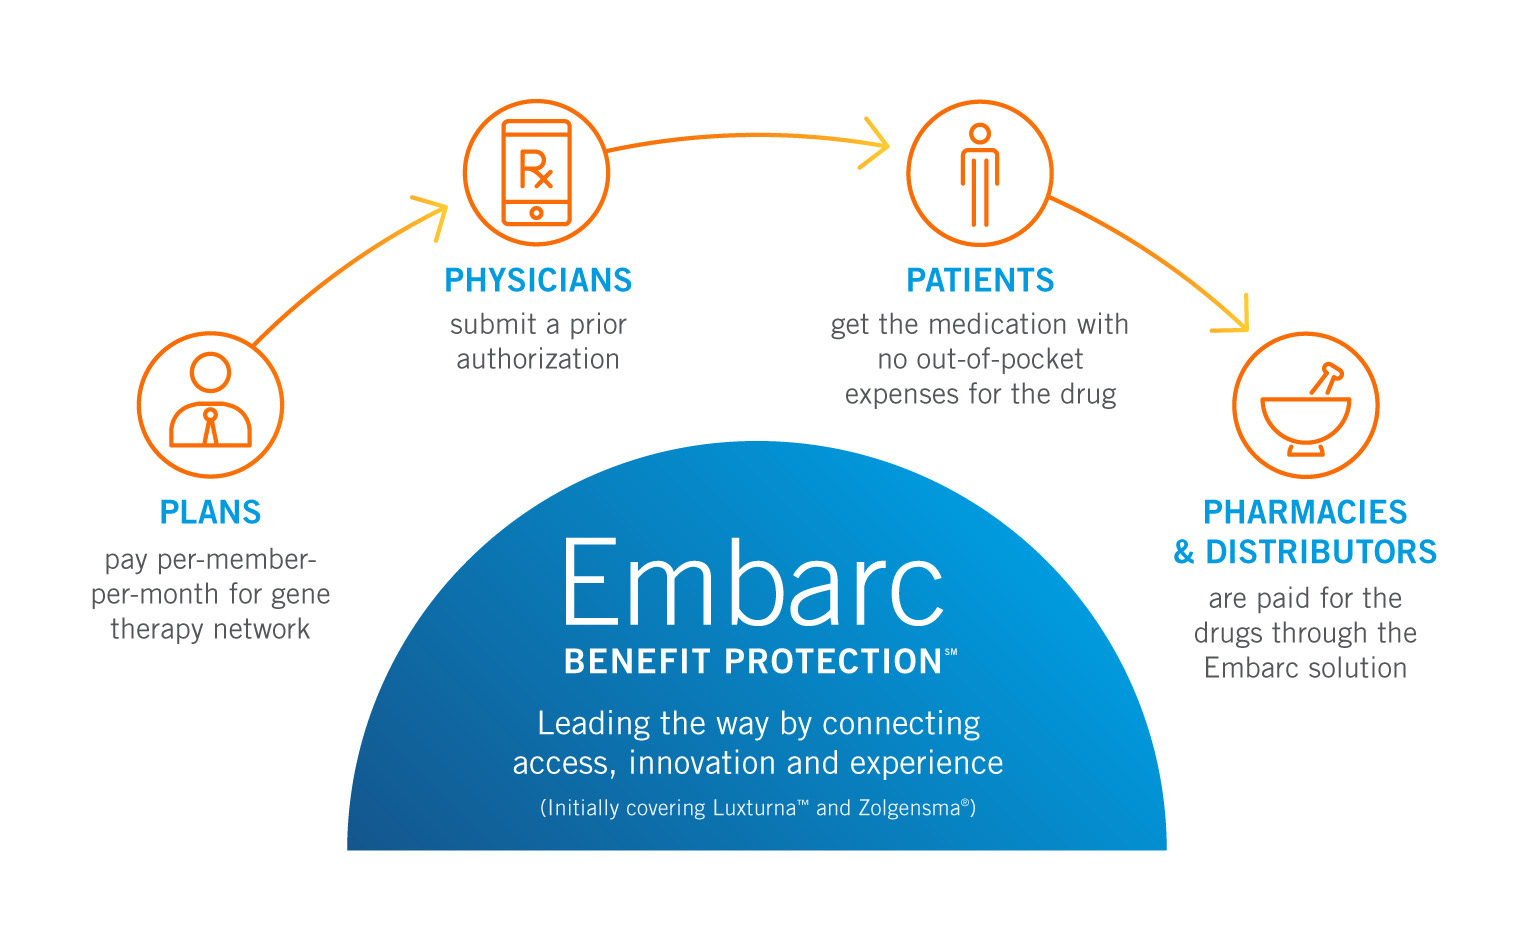 How Embarc Benefit Protection Works